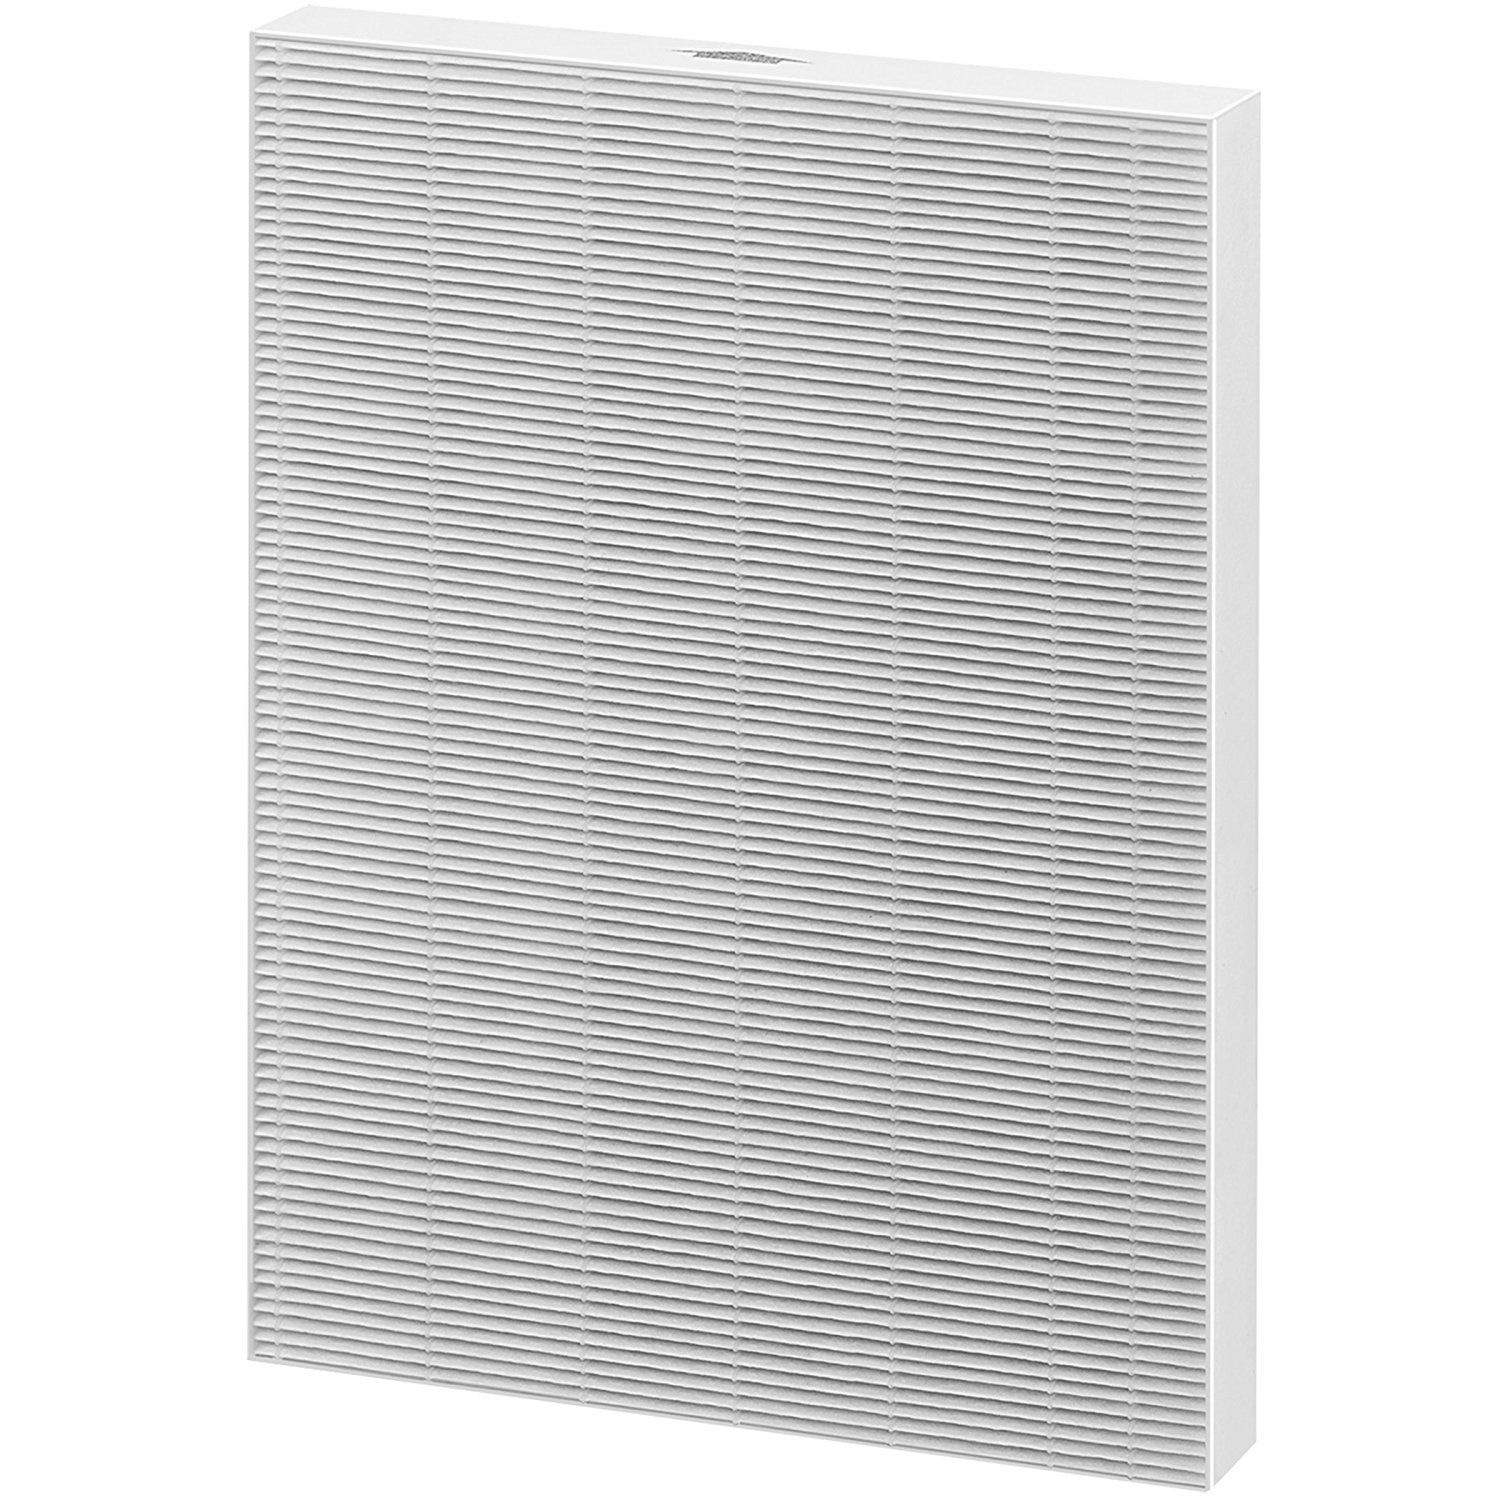 Fellowes Hepa Filter for Air Purifier DX55 (pc)